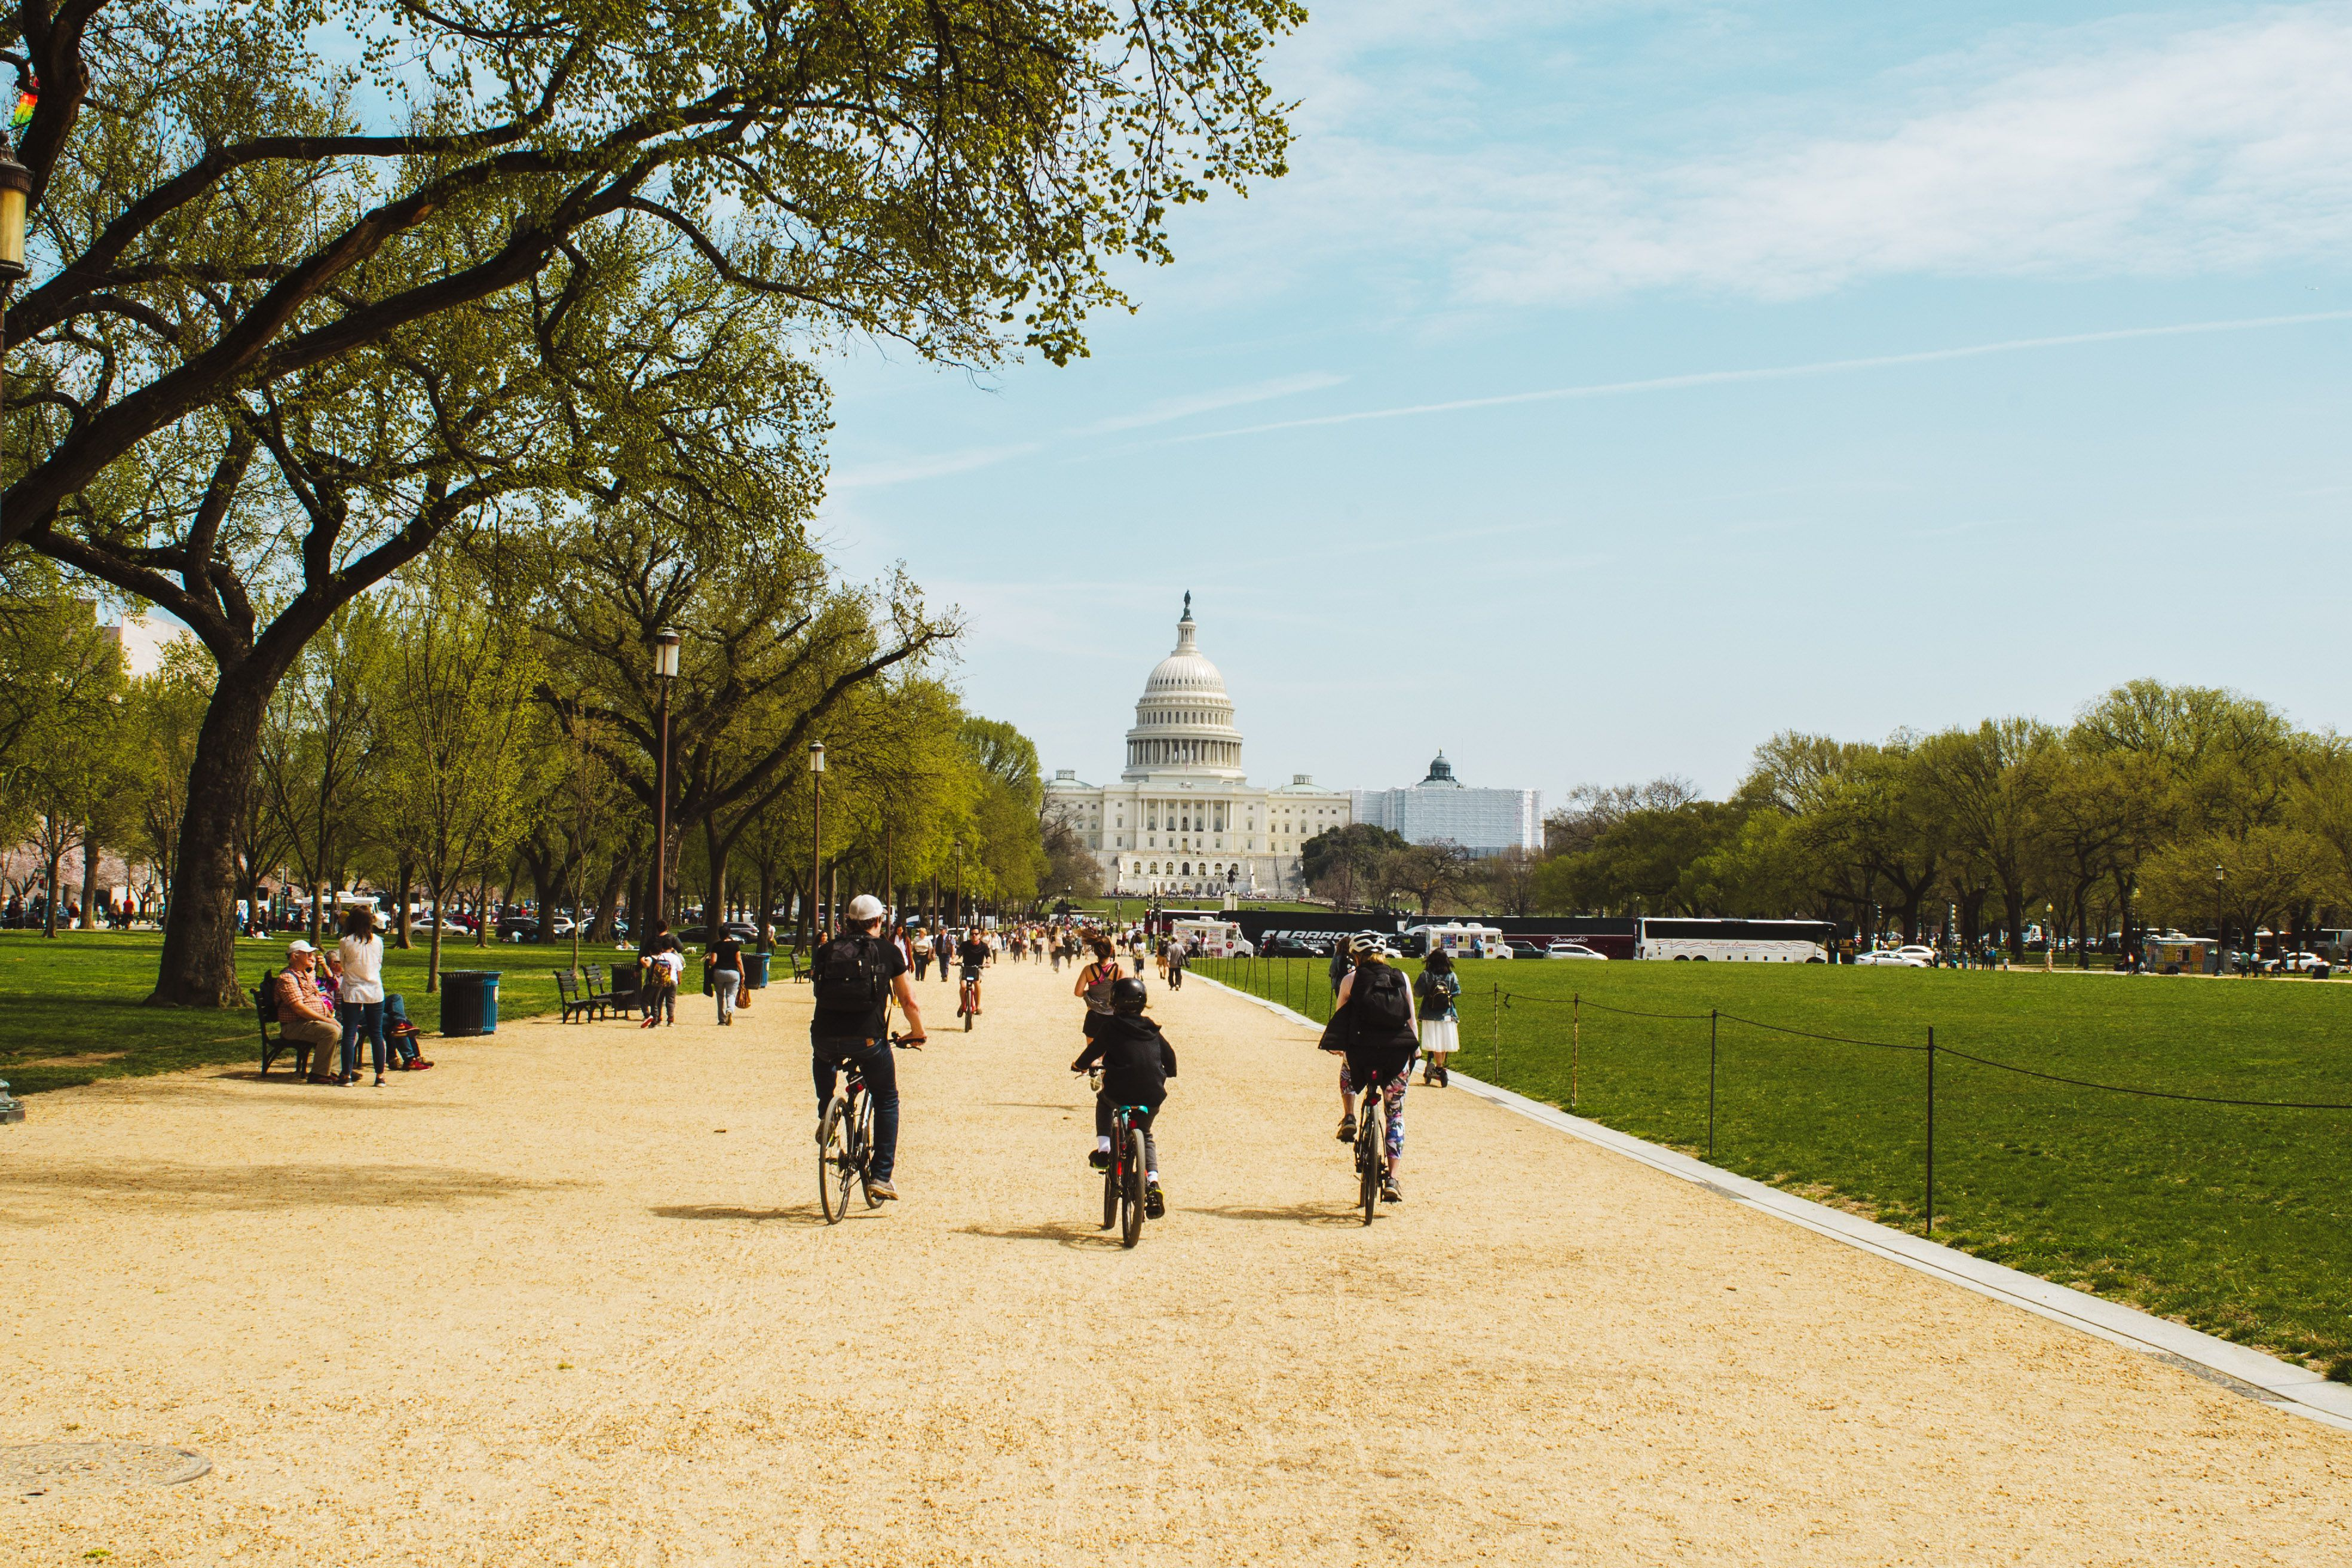 People biking towards the US Capitol building